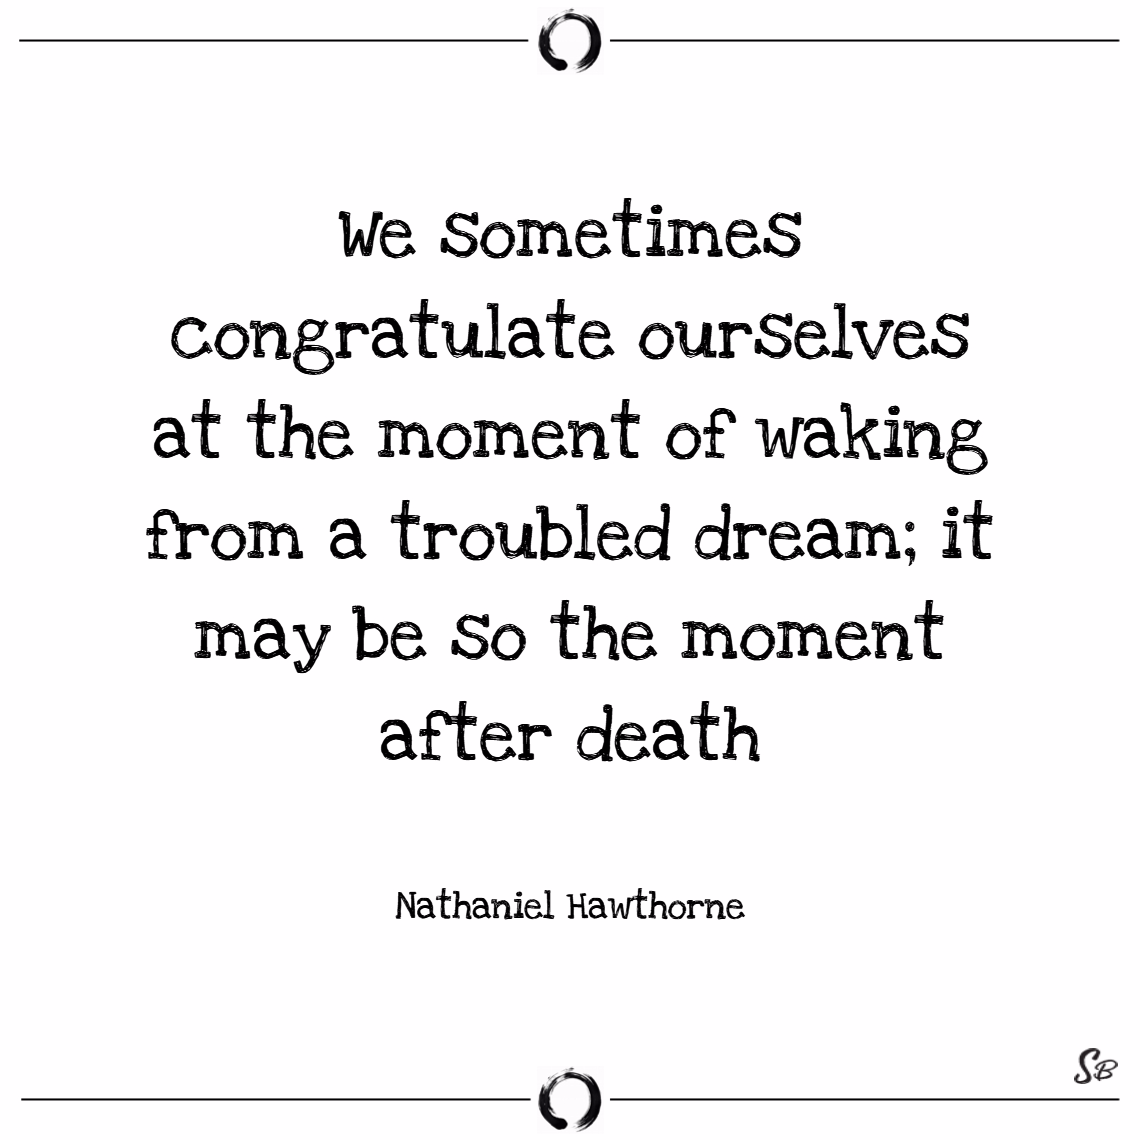 We sometimes congratulate ourselves at the moment of waking from a troubled dream; it may be so the moment after death. – nathaniel hawthorne